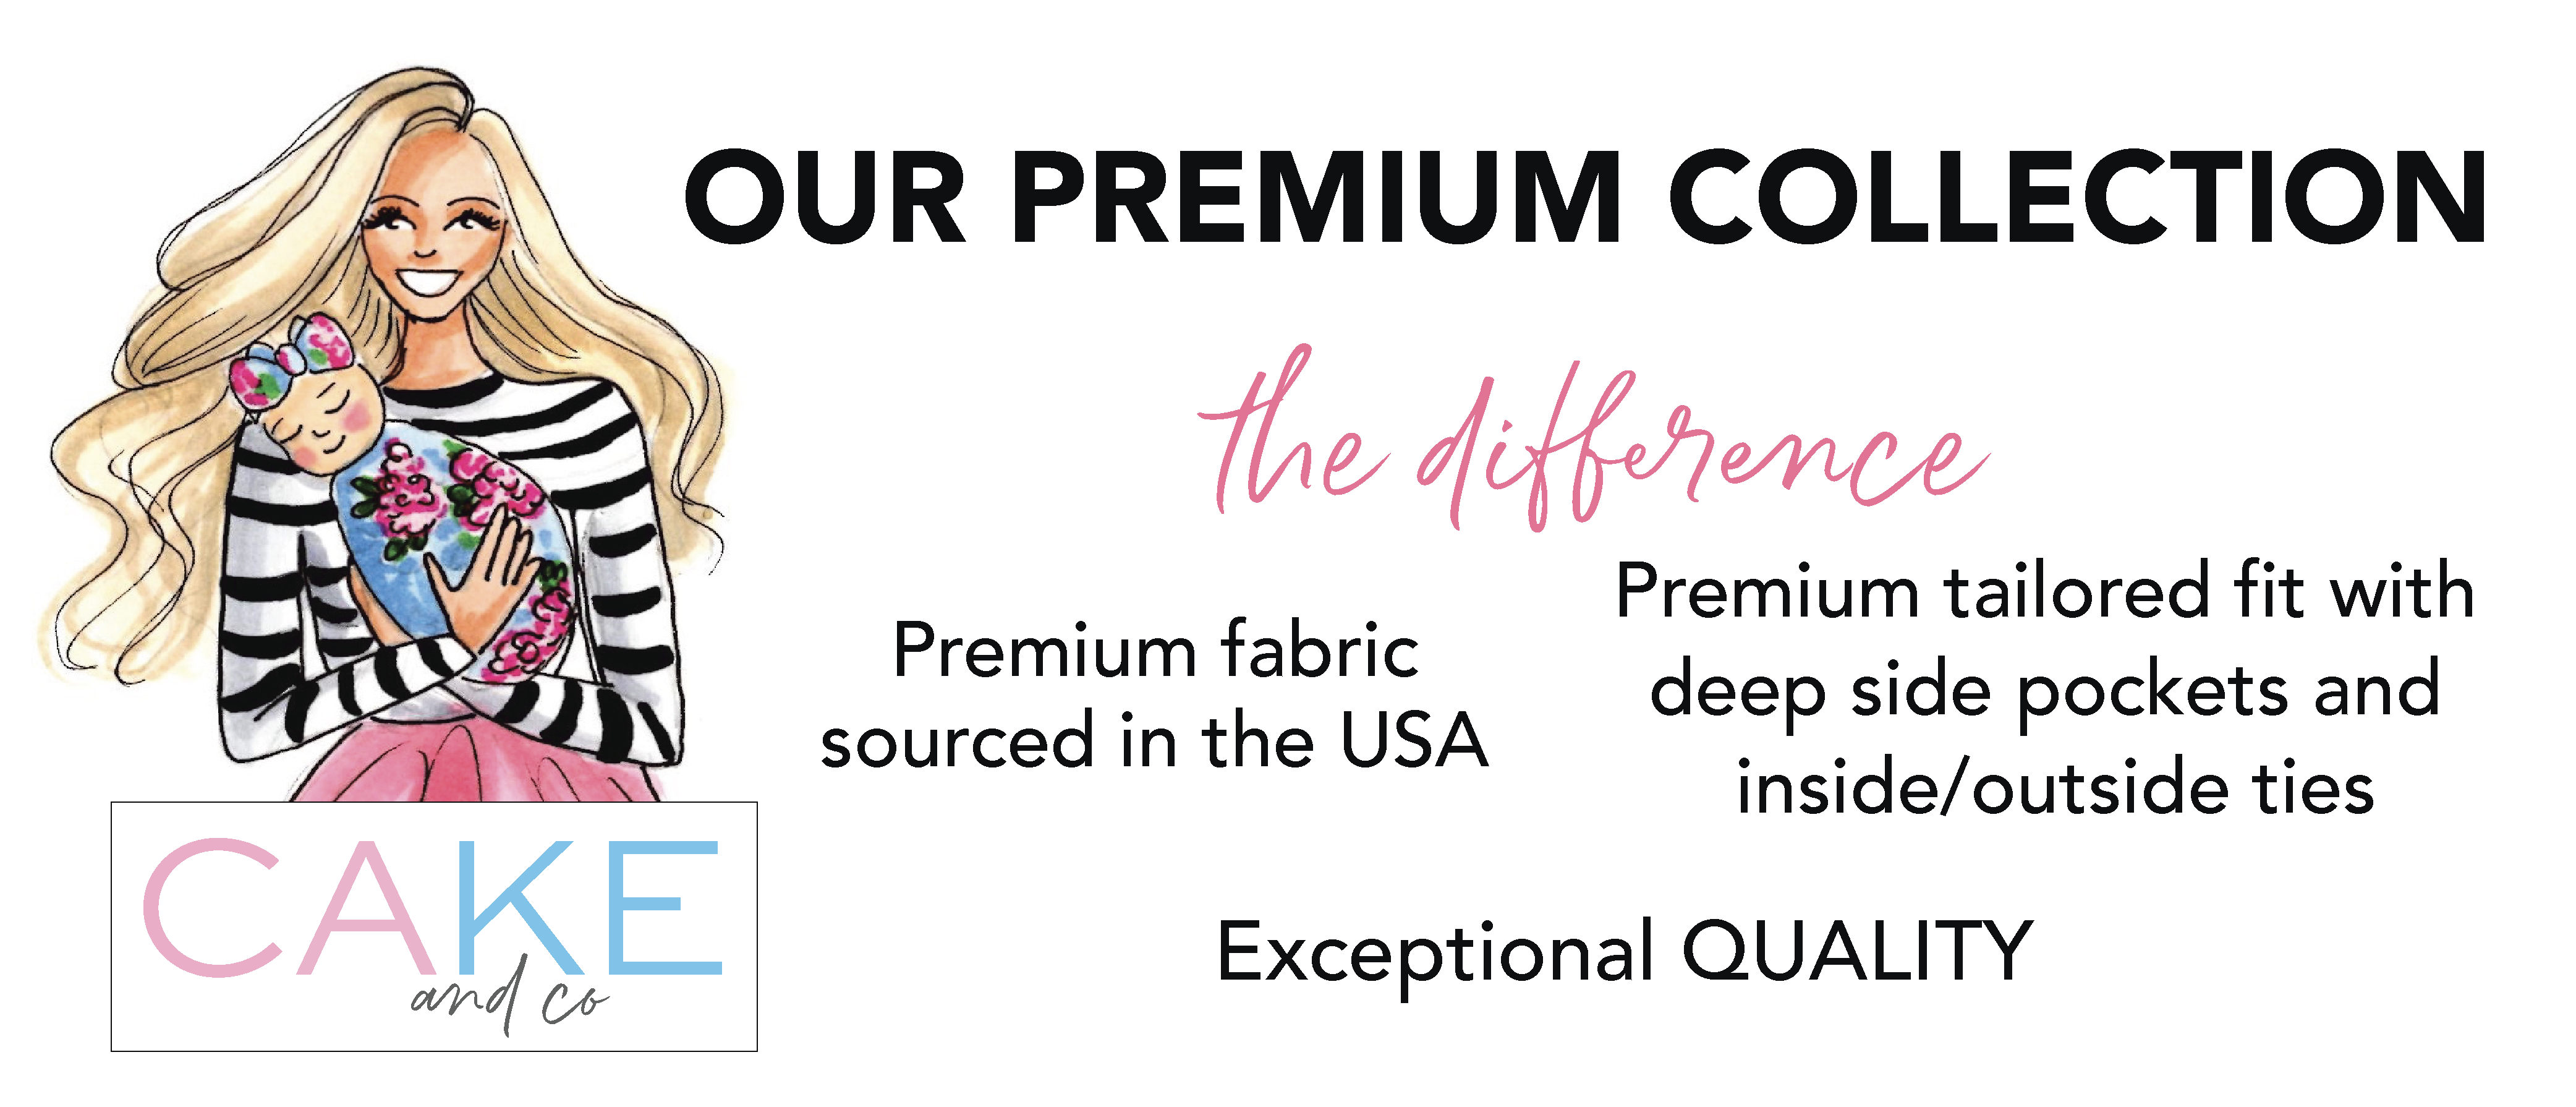 premium-collection-01.png